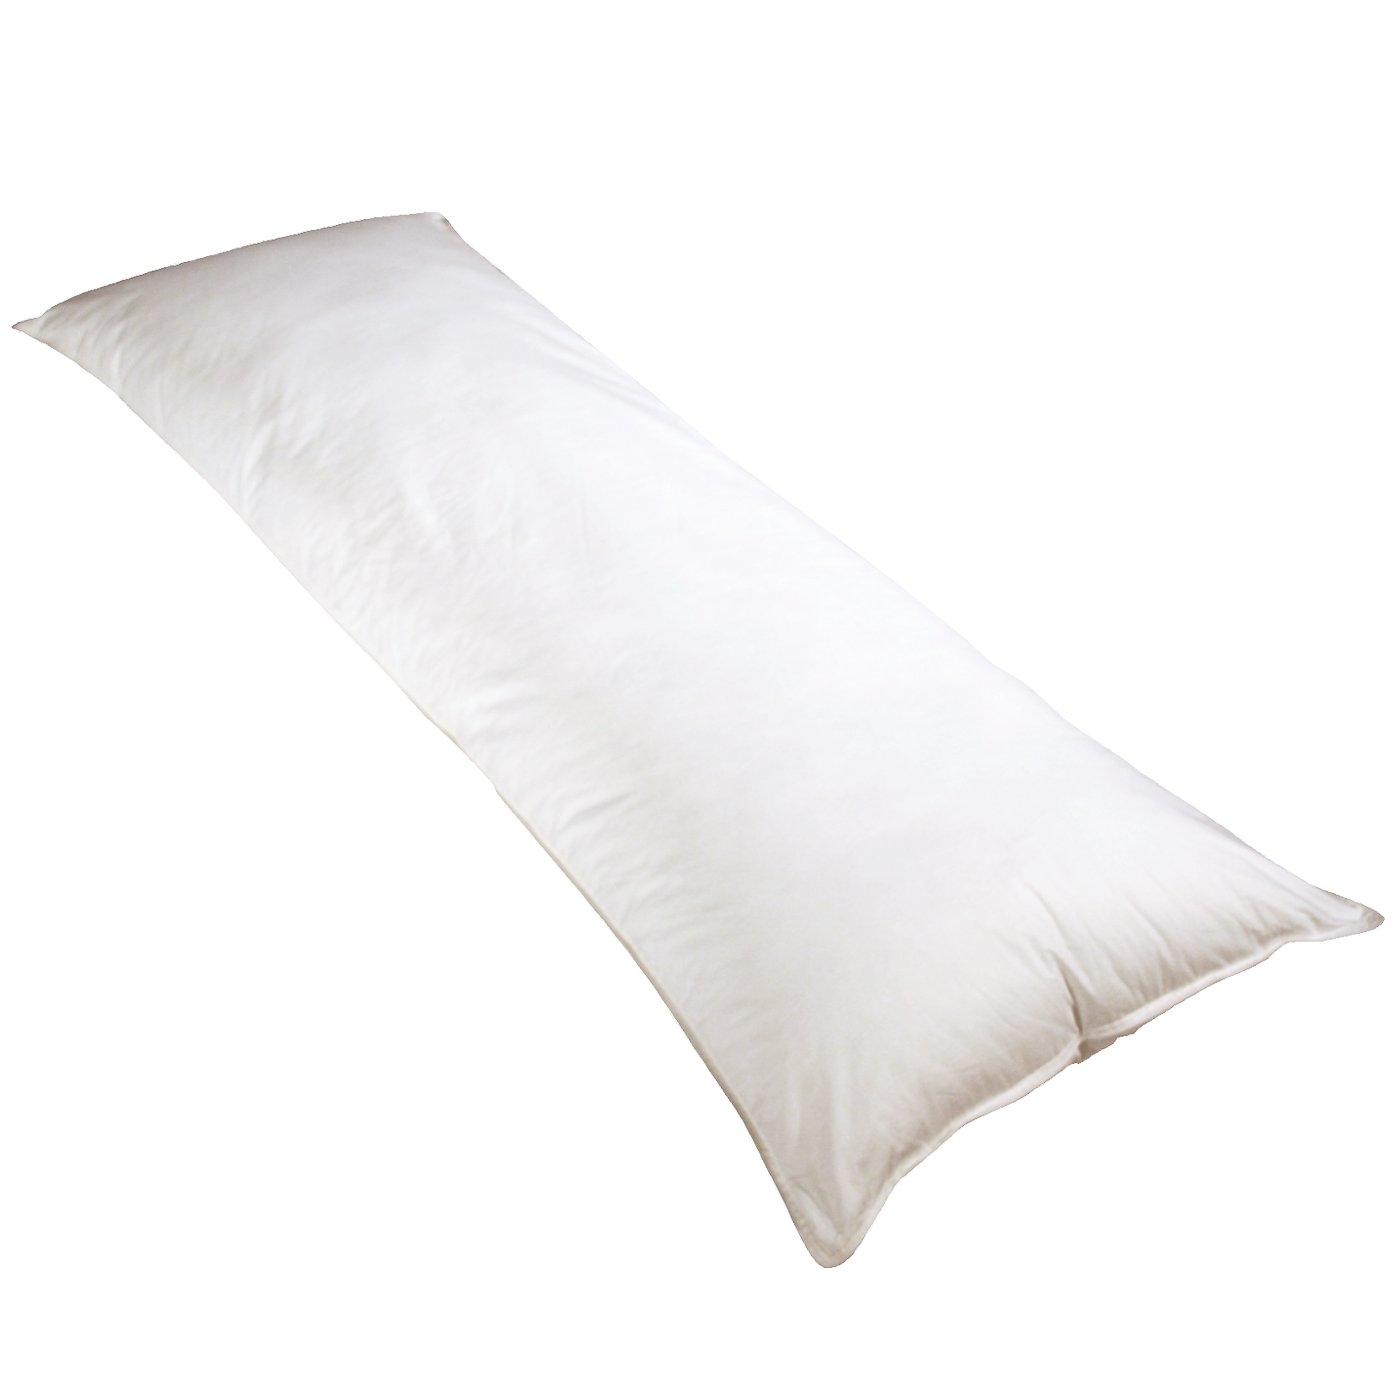 case pillow pillows wood floor long creative travel product bead com head from design asite soft contour dhgate cover